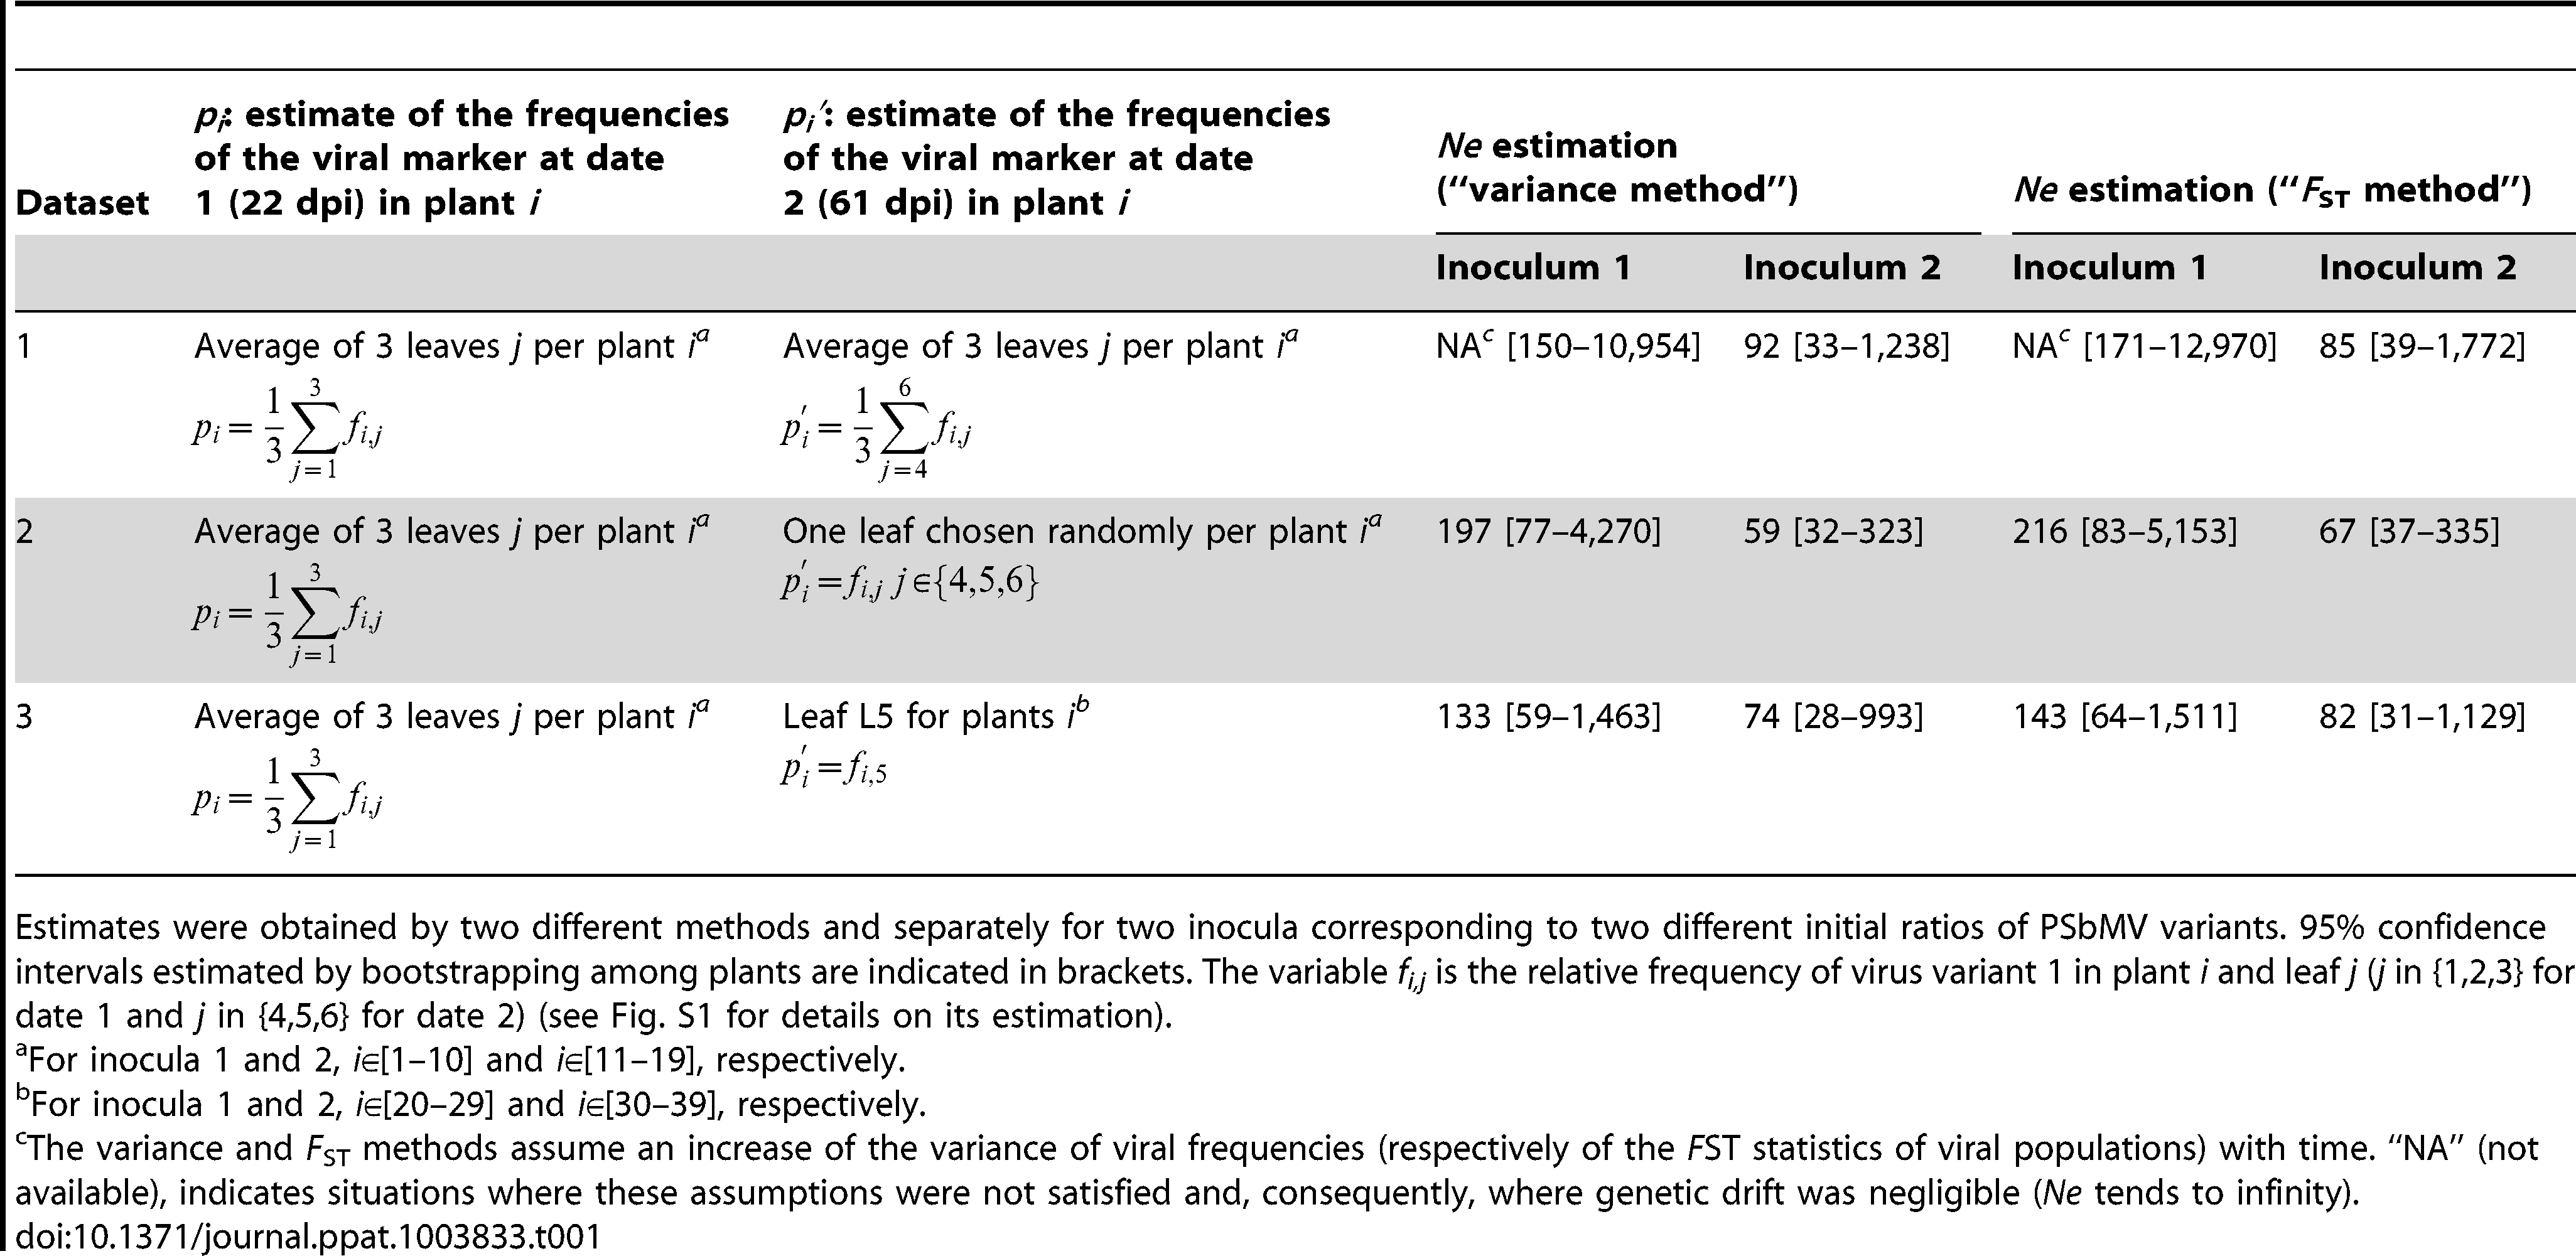 <i>Ne</i> estimates for the systemic colonization of pea leaves by PSbMV between 22 and 61 days post inoculation (dpi).